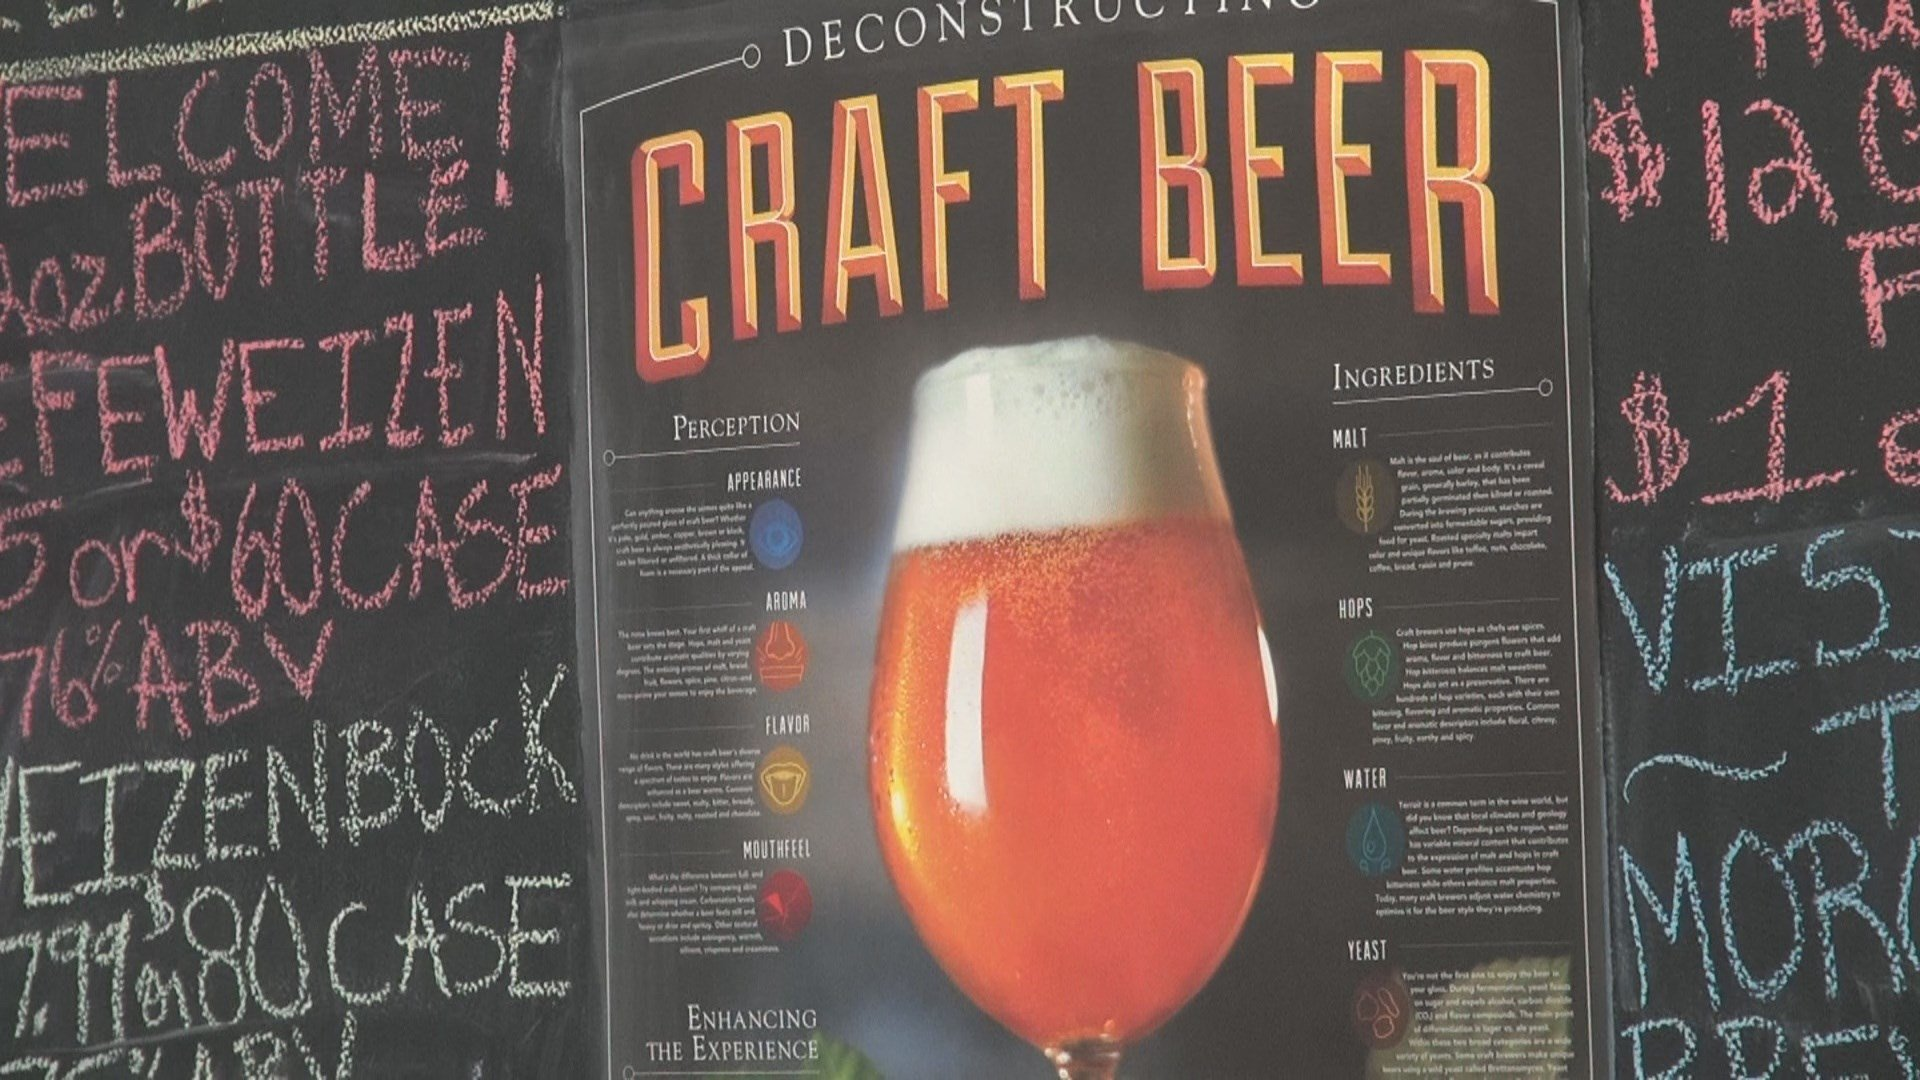 Craft Beer legislation looks to expand industry